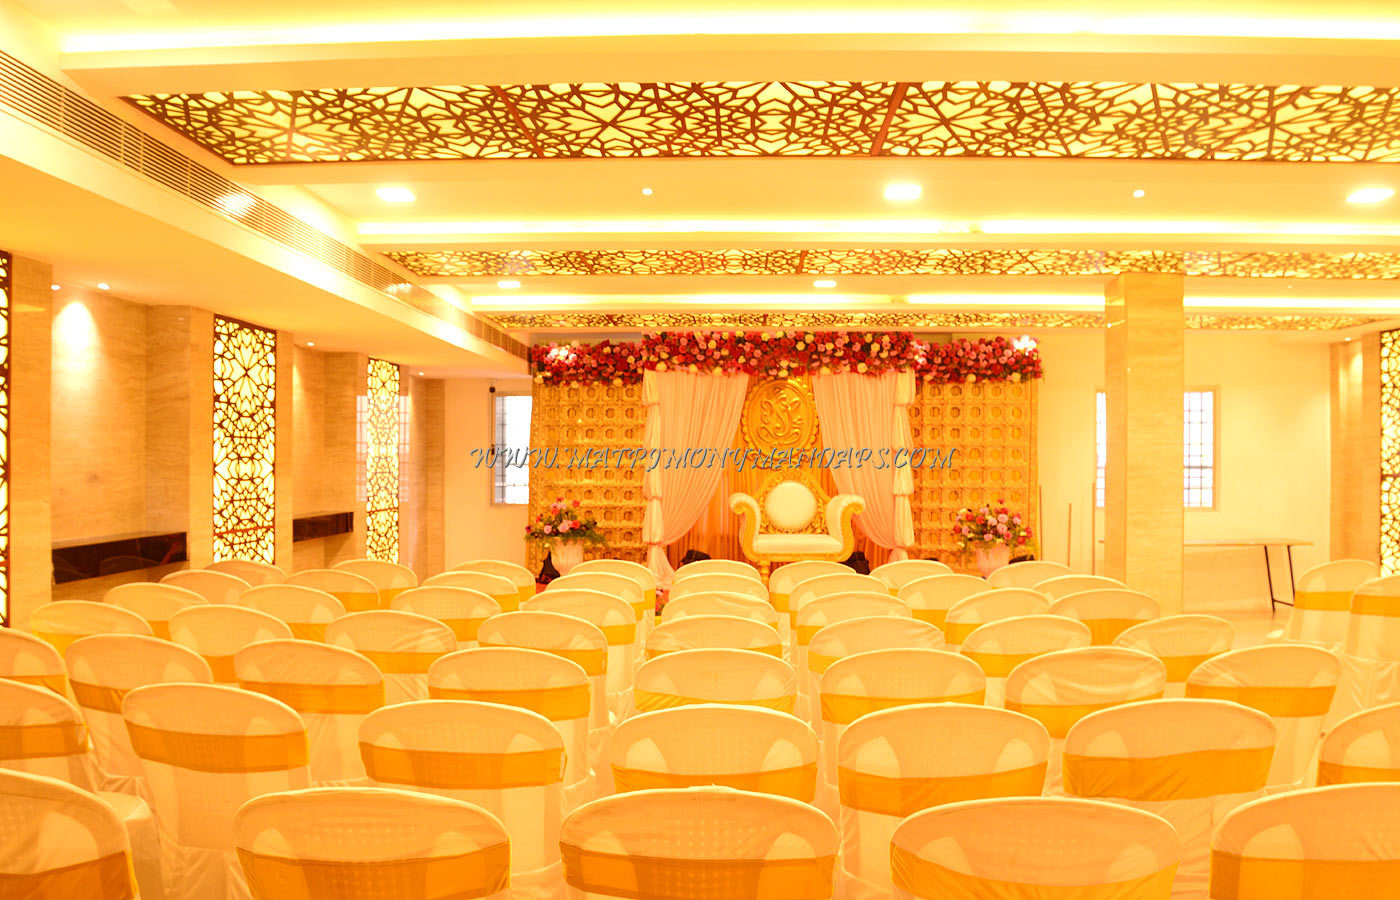 Find the availability of the Jupiter Party Hall (A/C) in RA Puram, Chennai and avail special offers